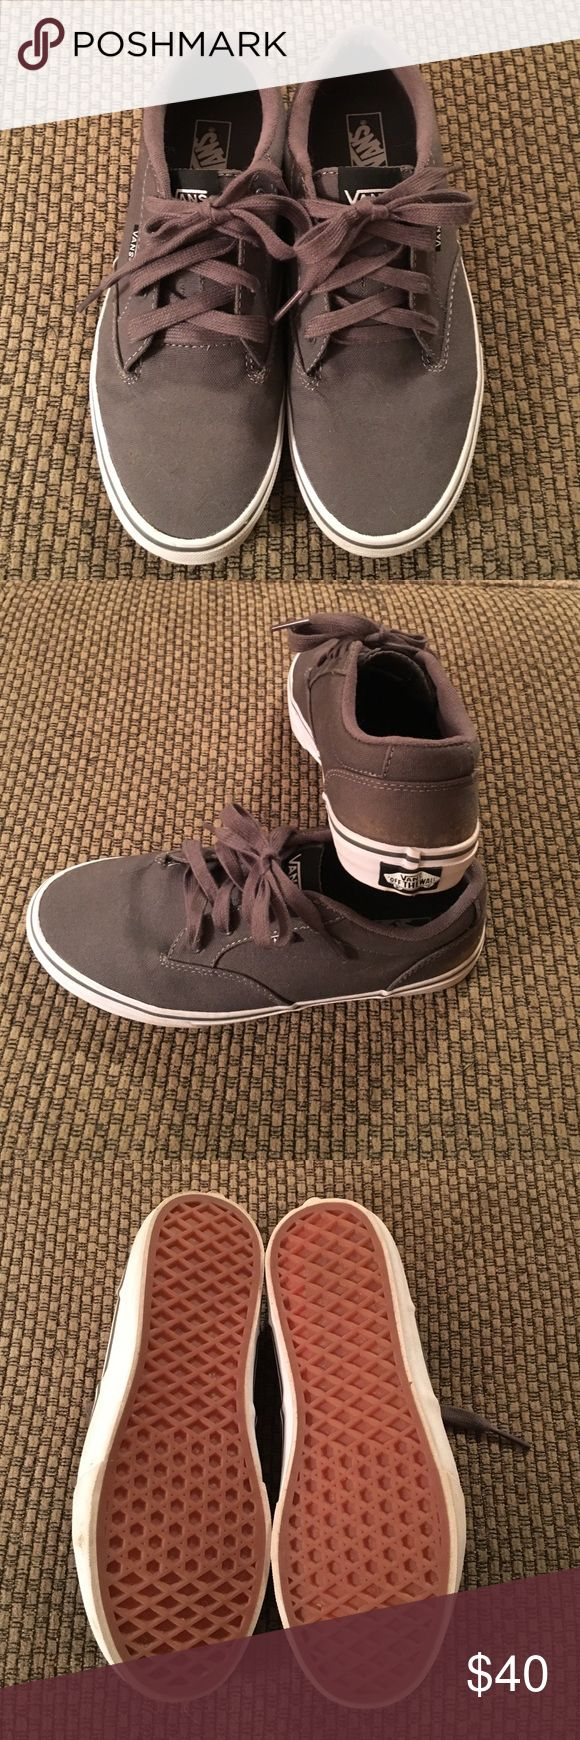 VANS sneakers Boys VANS sneakers. EXCELLENT condition.  Only worn once before he grew out of them. Vans Shoes Sneakers